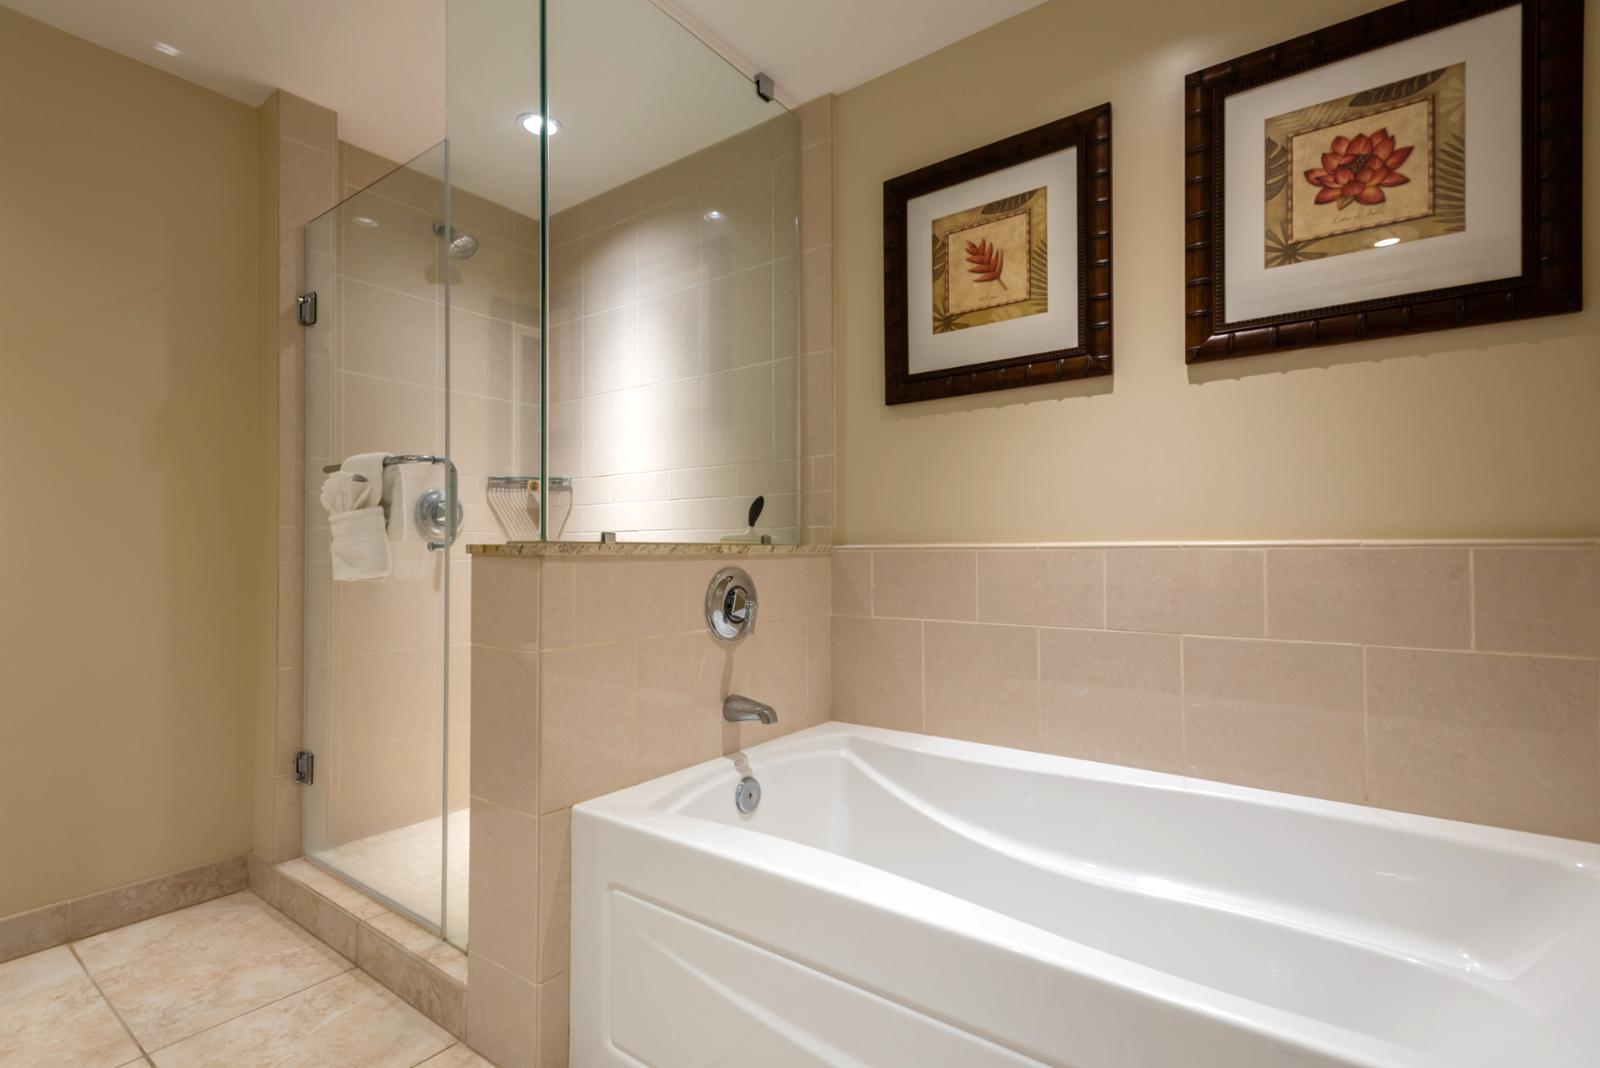 Large floor to ceiling glass shower with perfect bath for soaking and relaxing